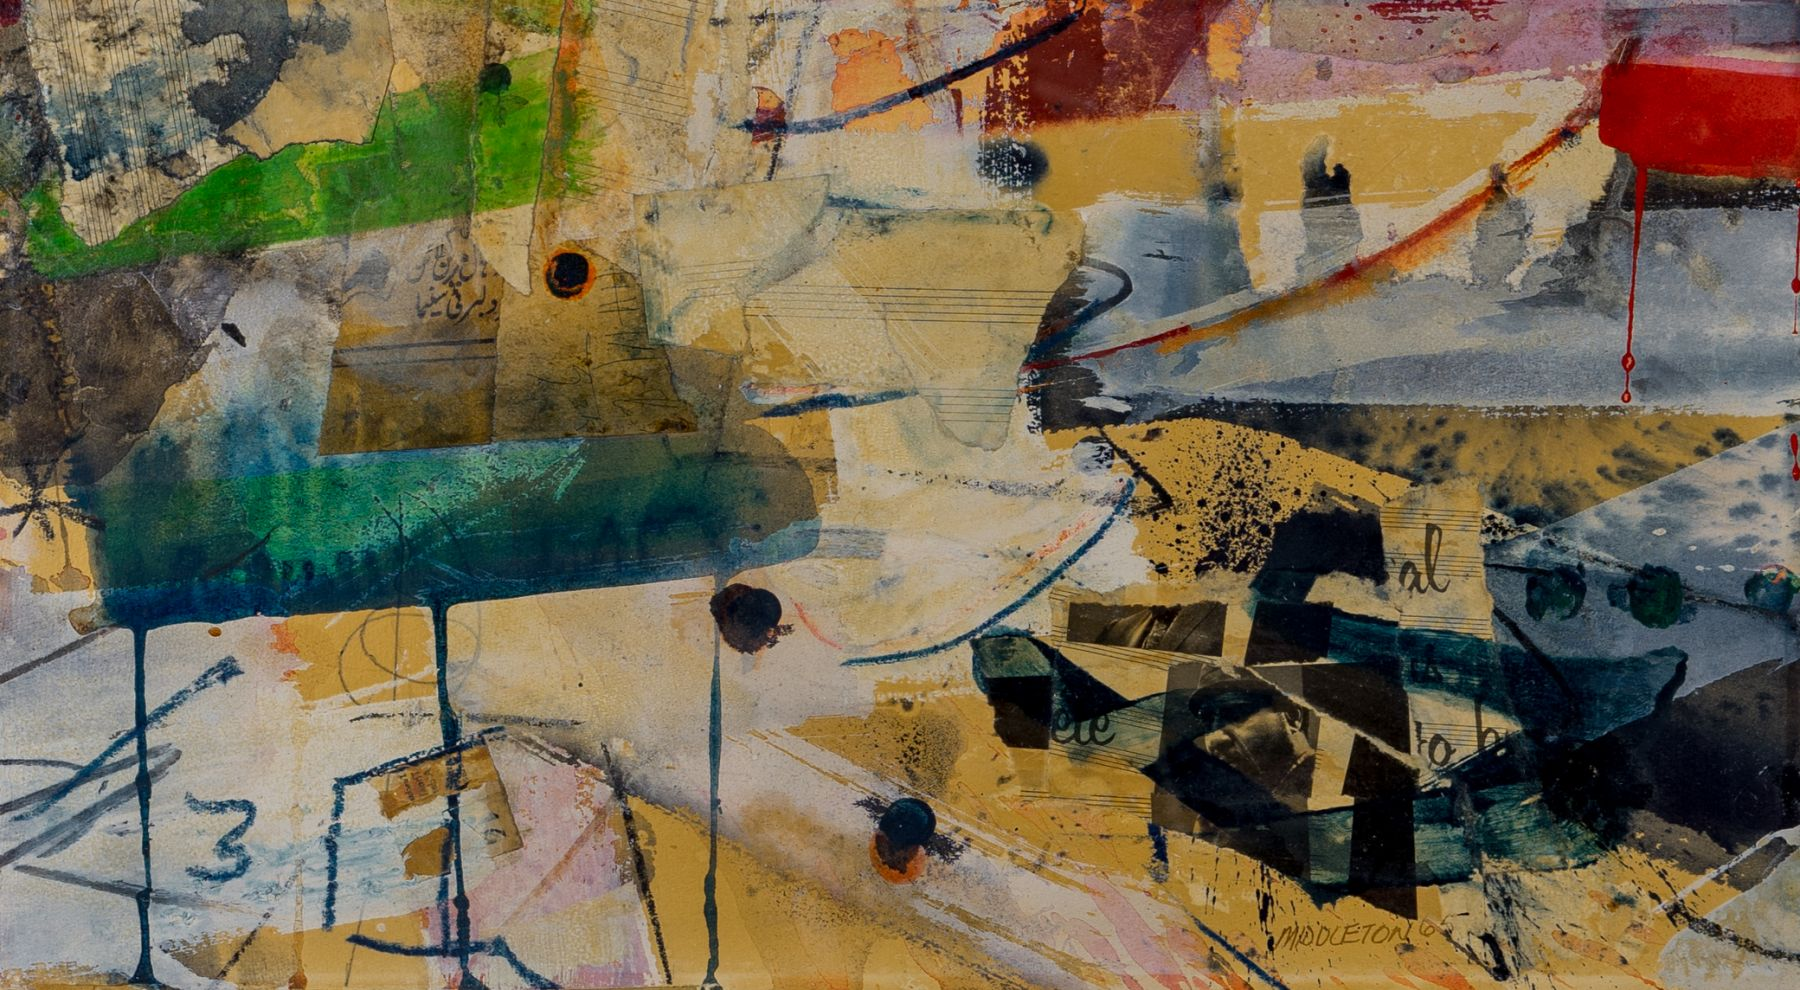 Ode to Thelonius, 1965, Mixed media collageon paper